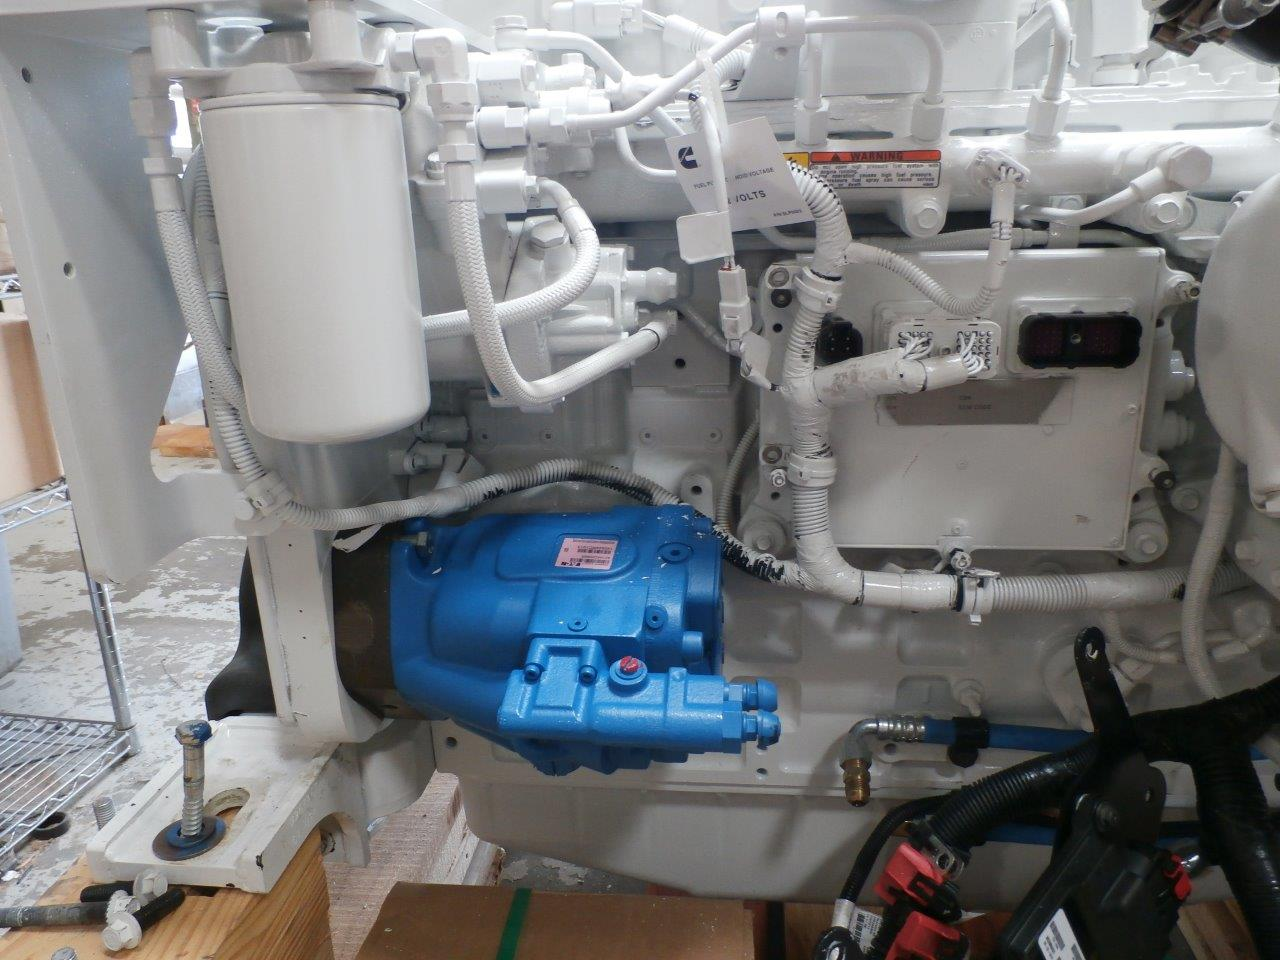 QSC with Big Hydraulic Pump